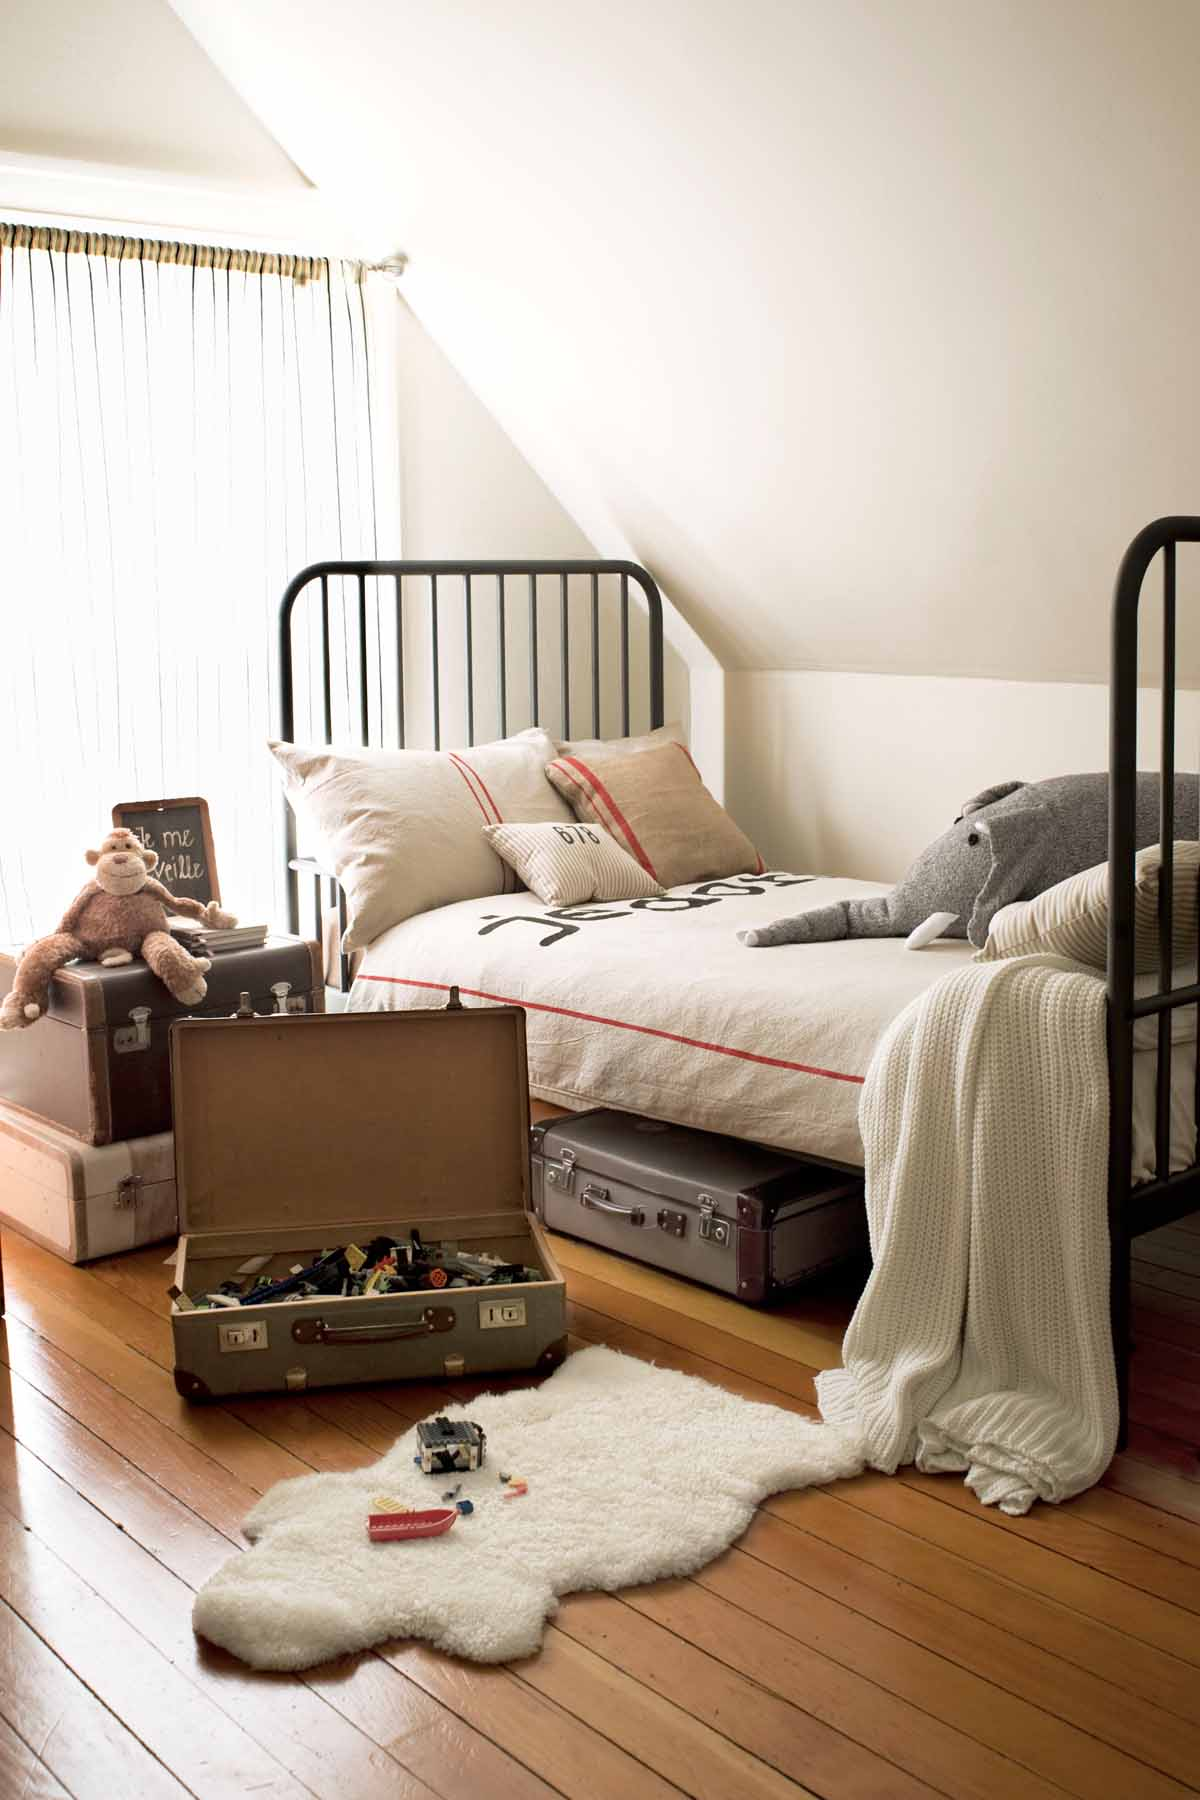 14 best boys bedroom ideas room decor and themes for a 10936 | 1492204284 kids bedroom 012